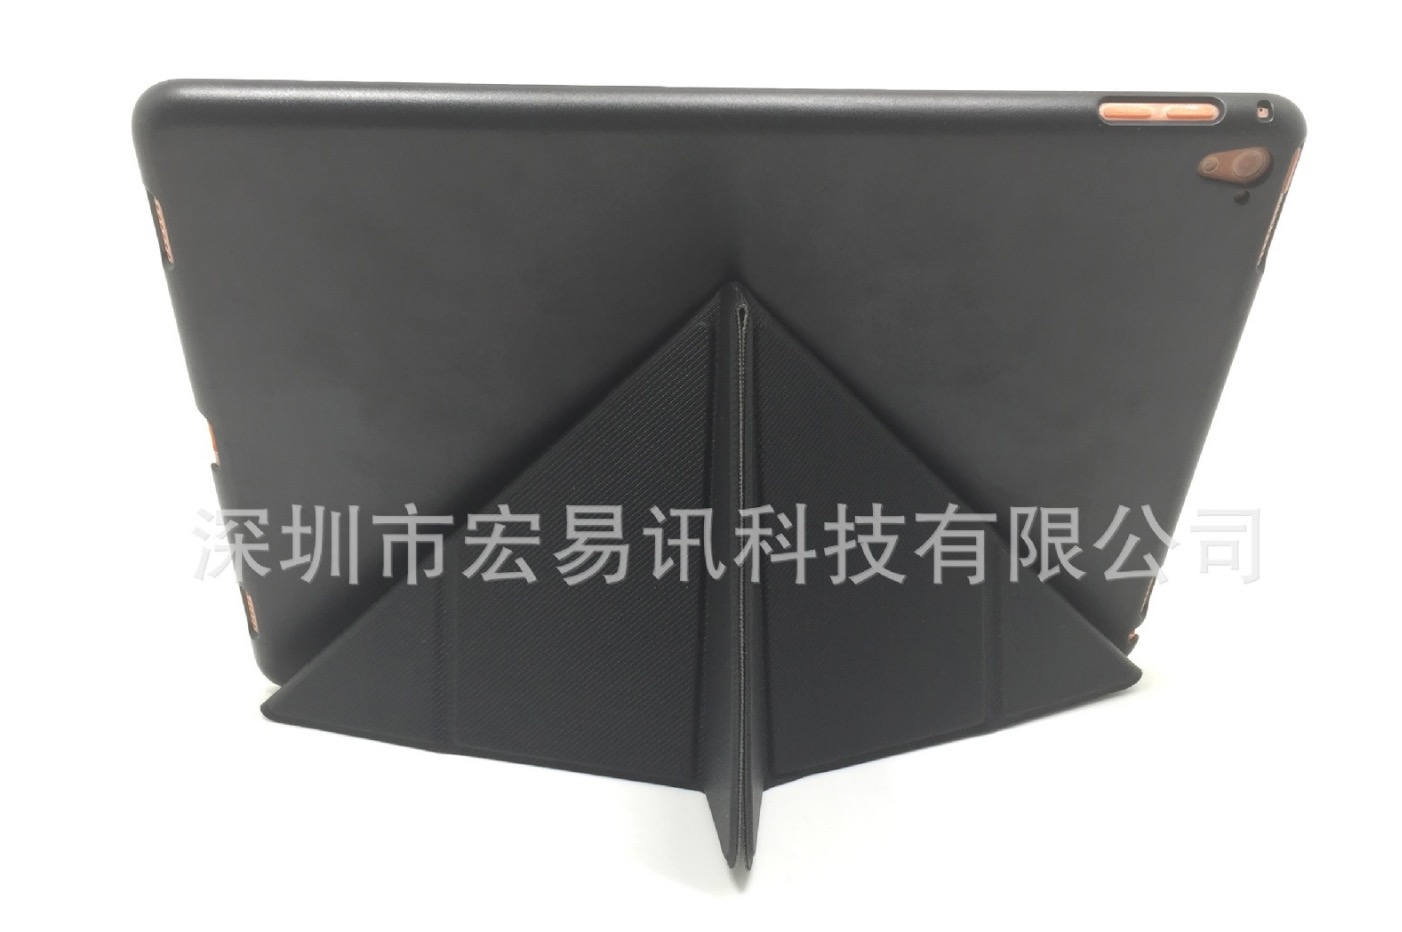 ipad-air3-case-leak